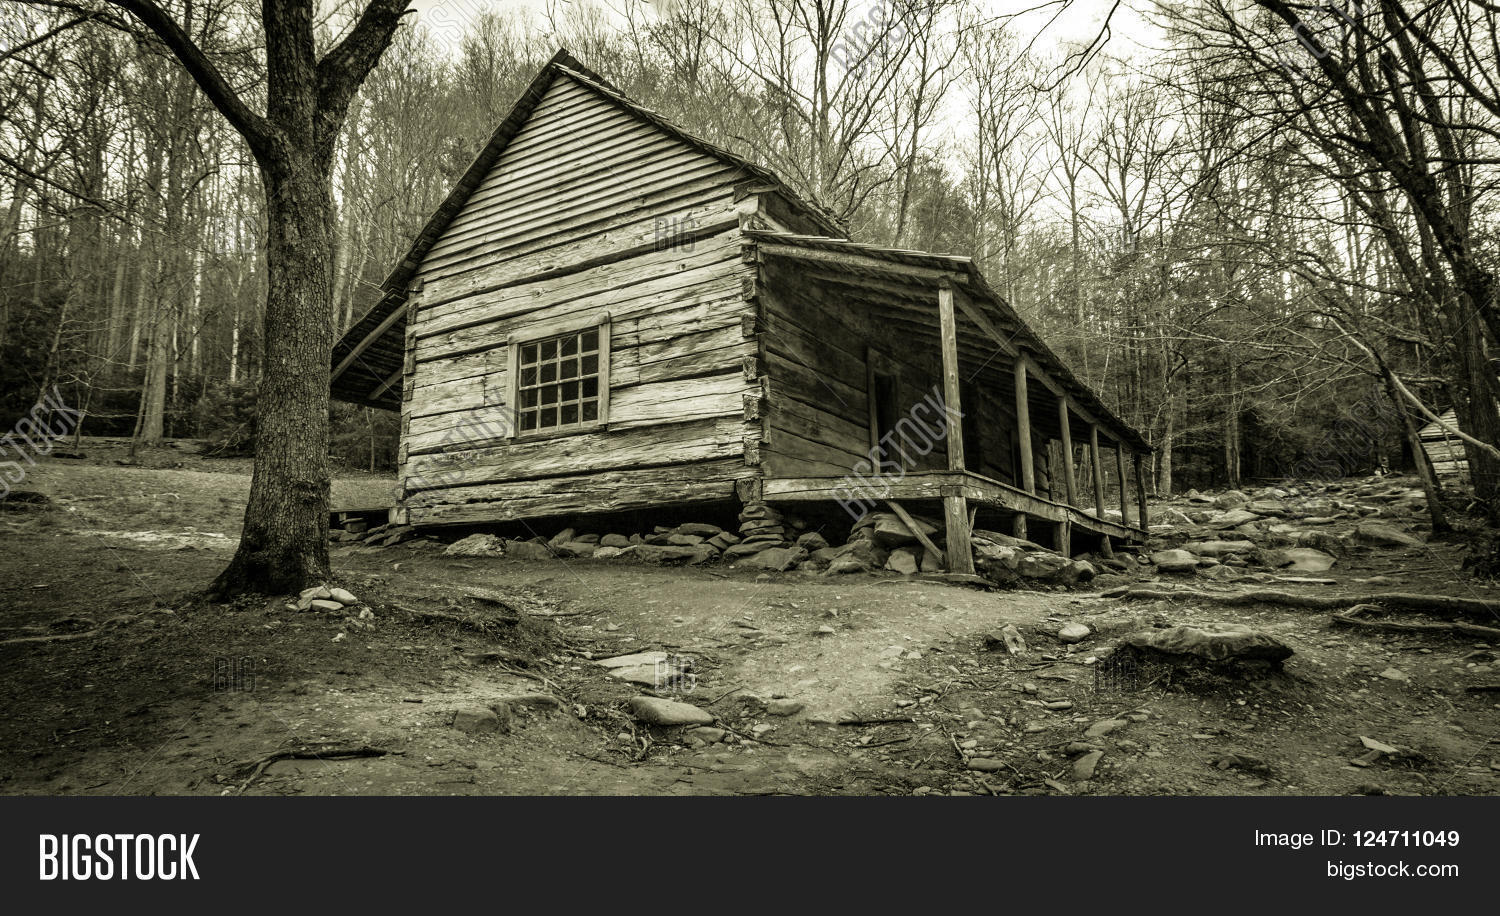 smoky log united cabin national tennessee great states usa photos cabins image free park in mountains